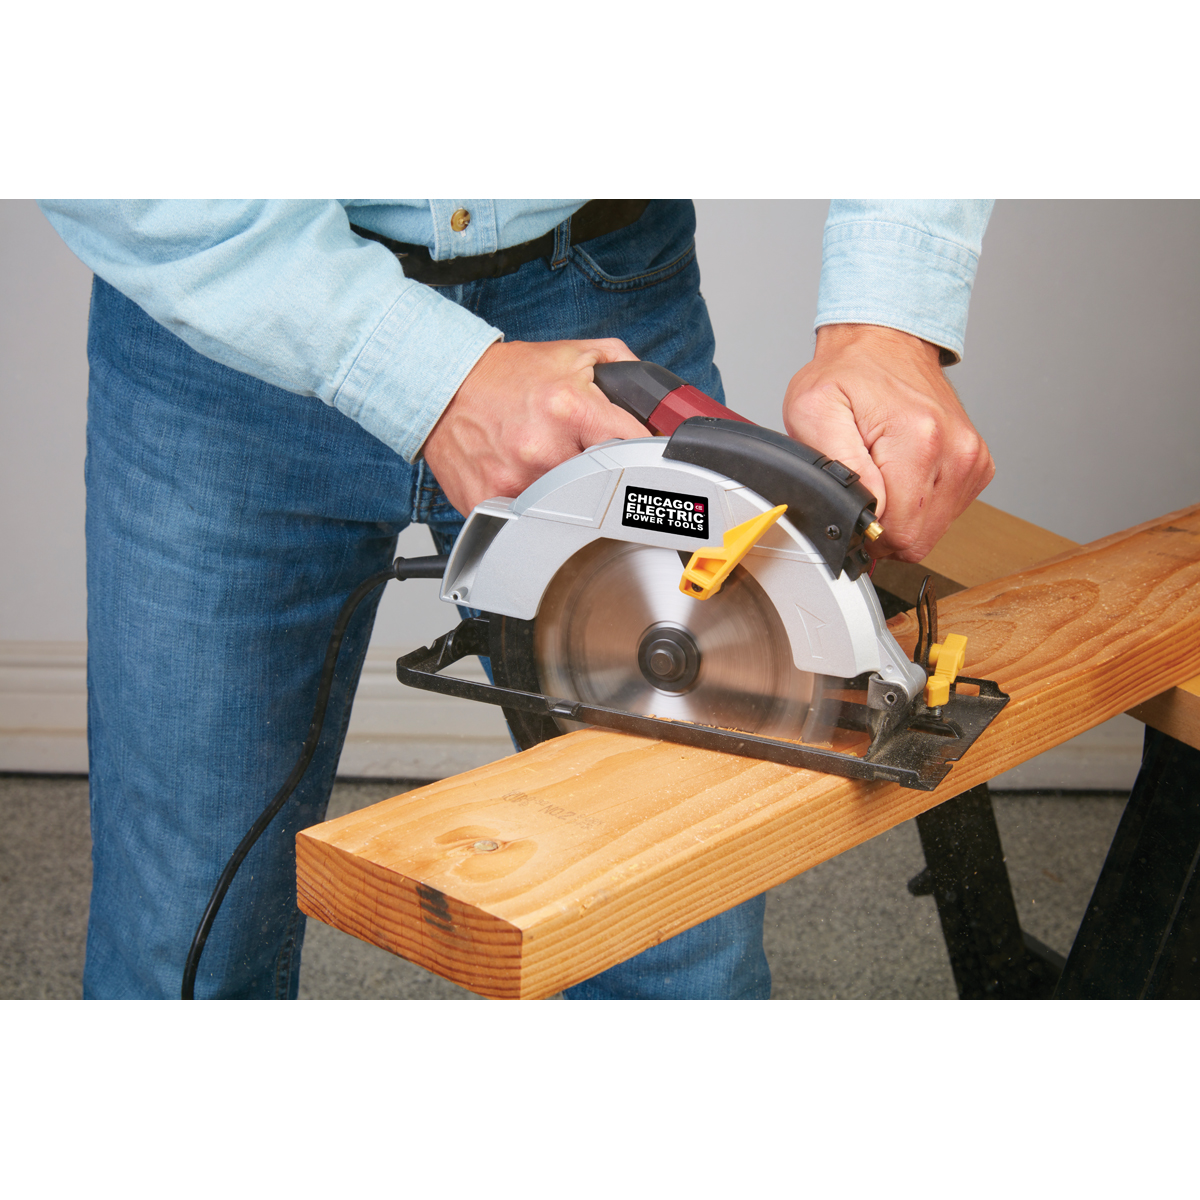 Circular Saw Rip Guide--My Version: 6 Steps (with Pictures)